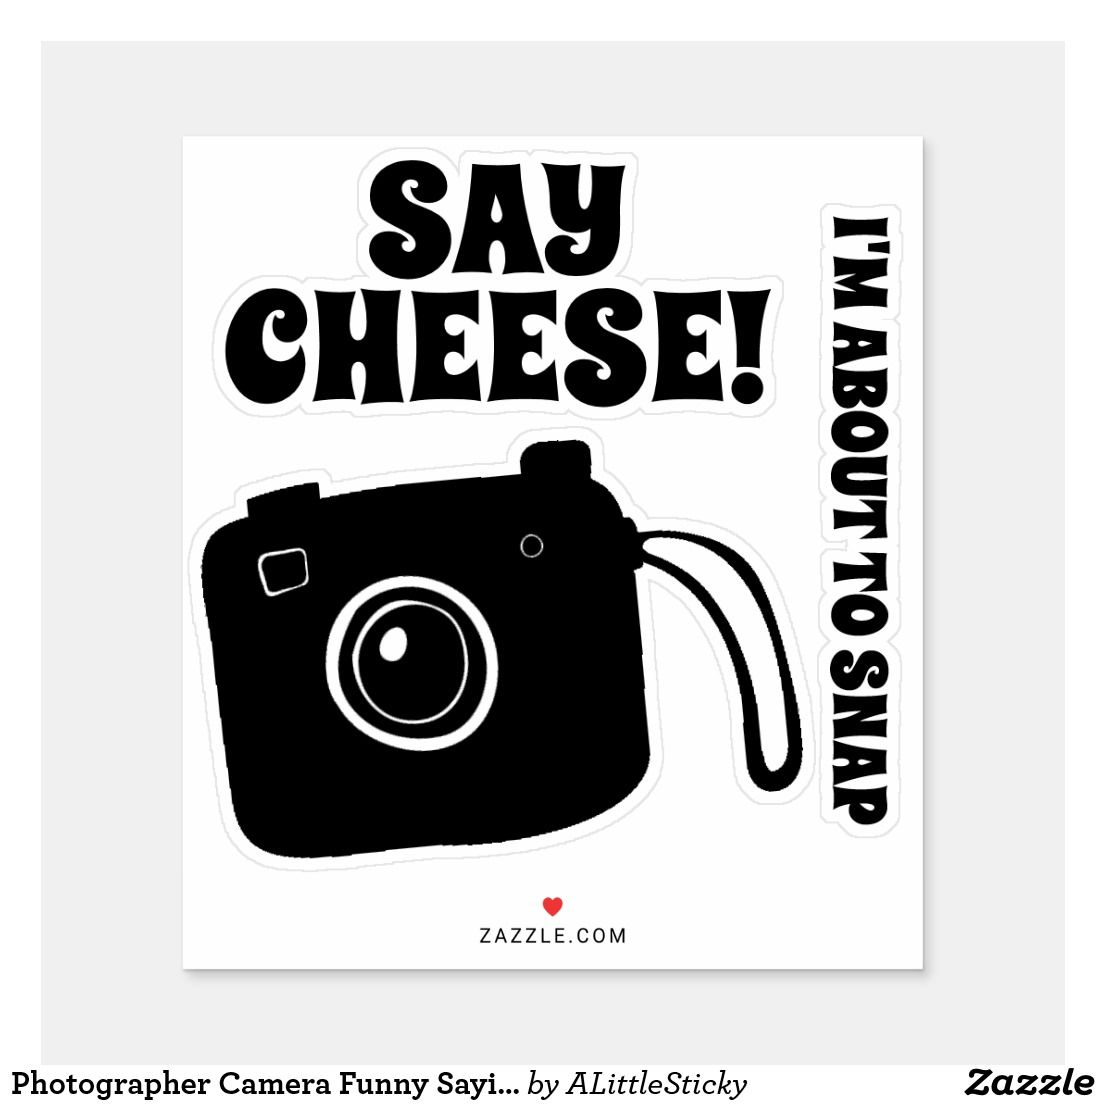 Photographer Camera Funny Sayings Sticker Zazzle Com Photographer Camera Design Your Own Stickers Funny Quotes